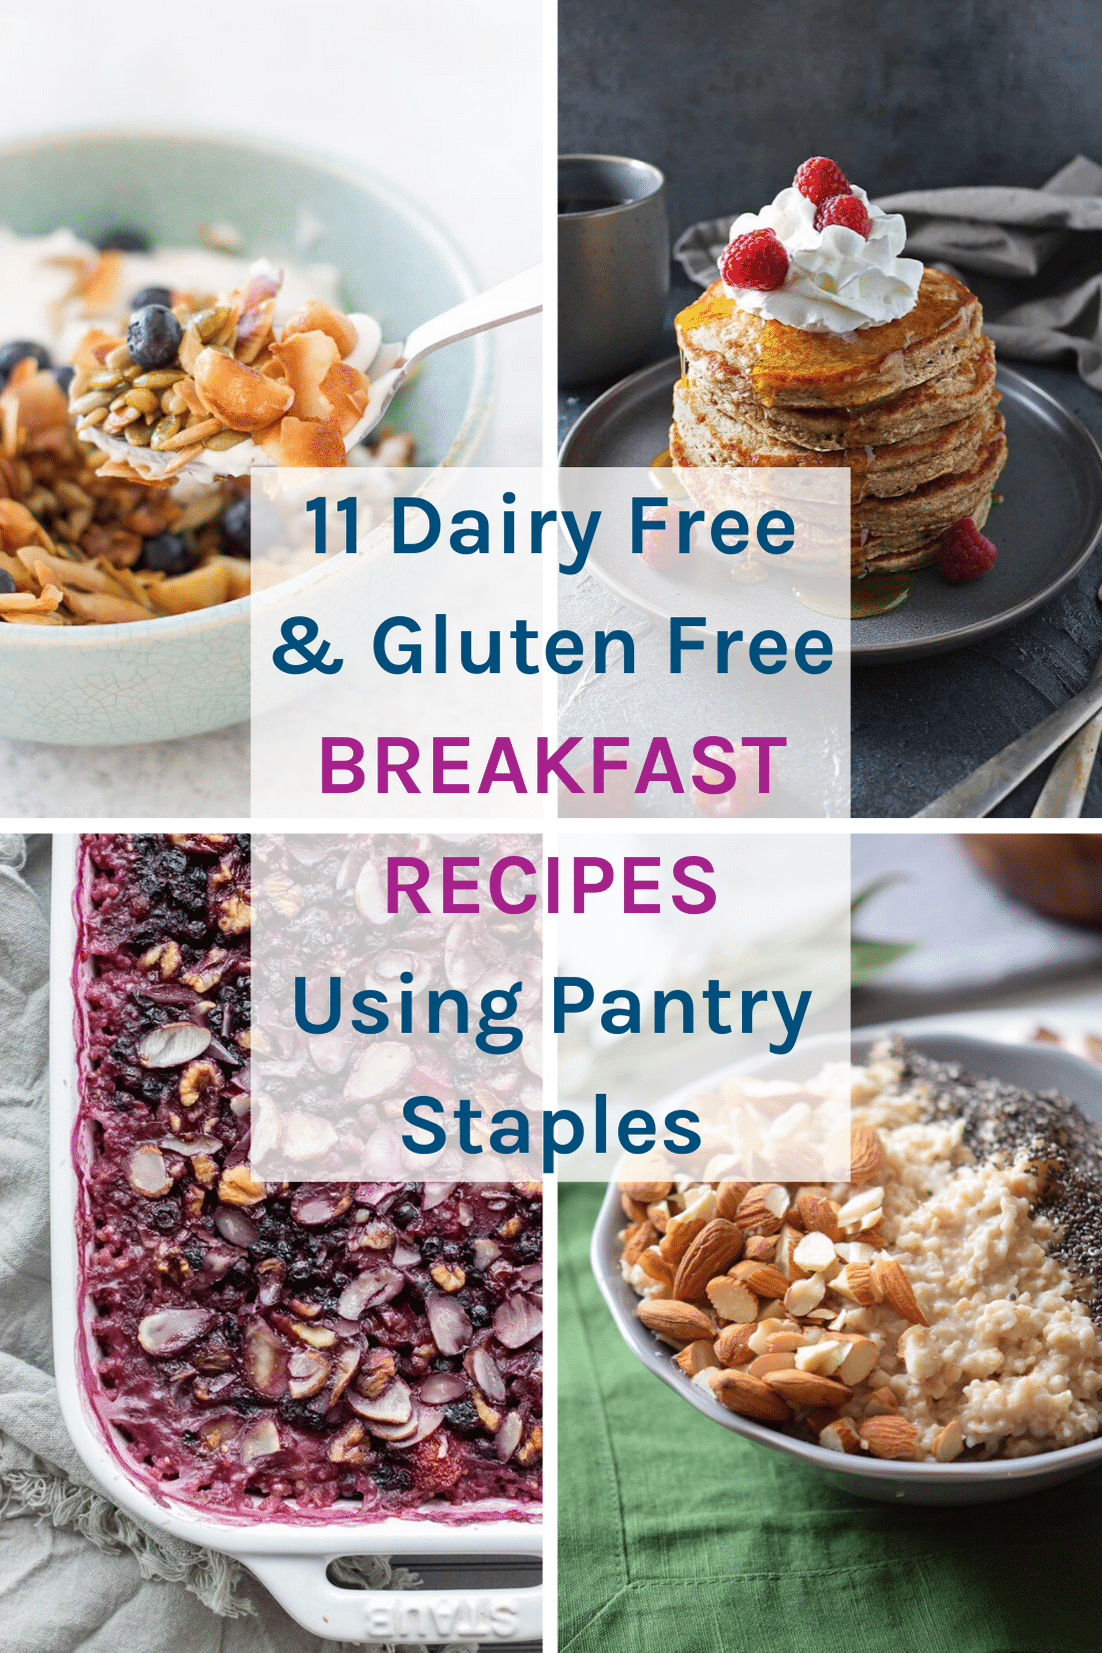 11 Gluten and Dairy Free Breakfast Recipes Using Pantry Staples - These are all healthy recipes that use up pantry staples that you should keep a few weeks stock of in your pantry that you can rely on during emergencies.